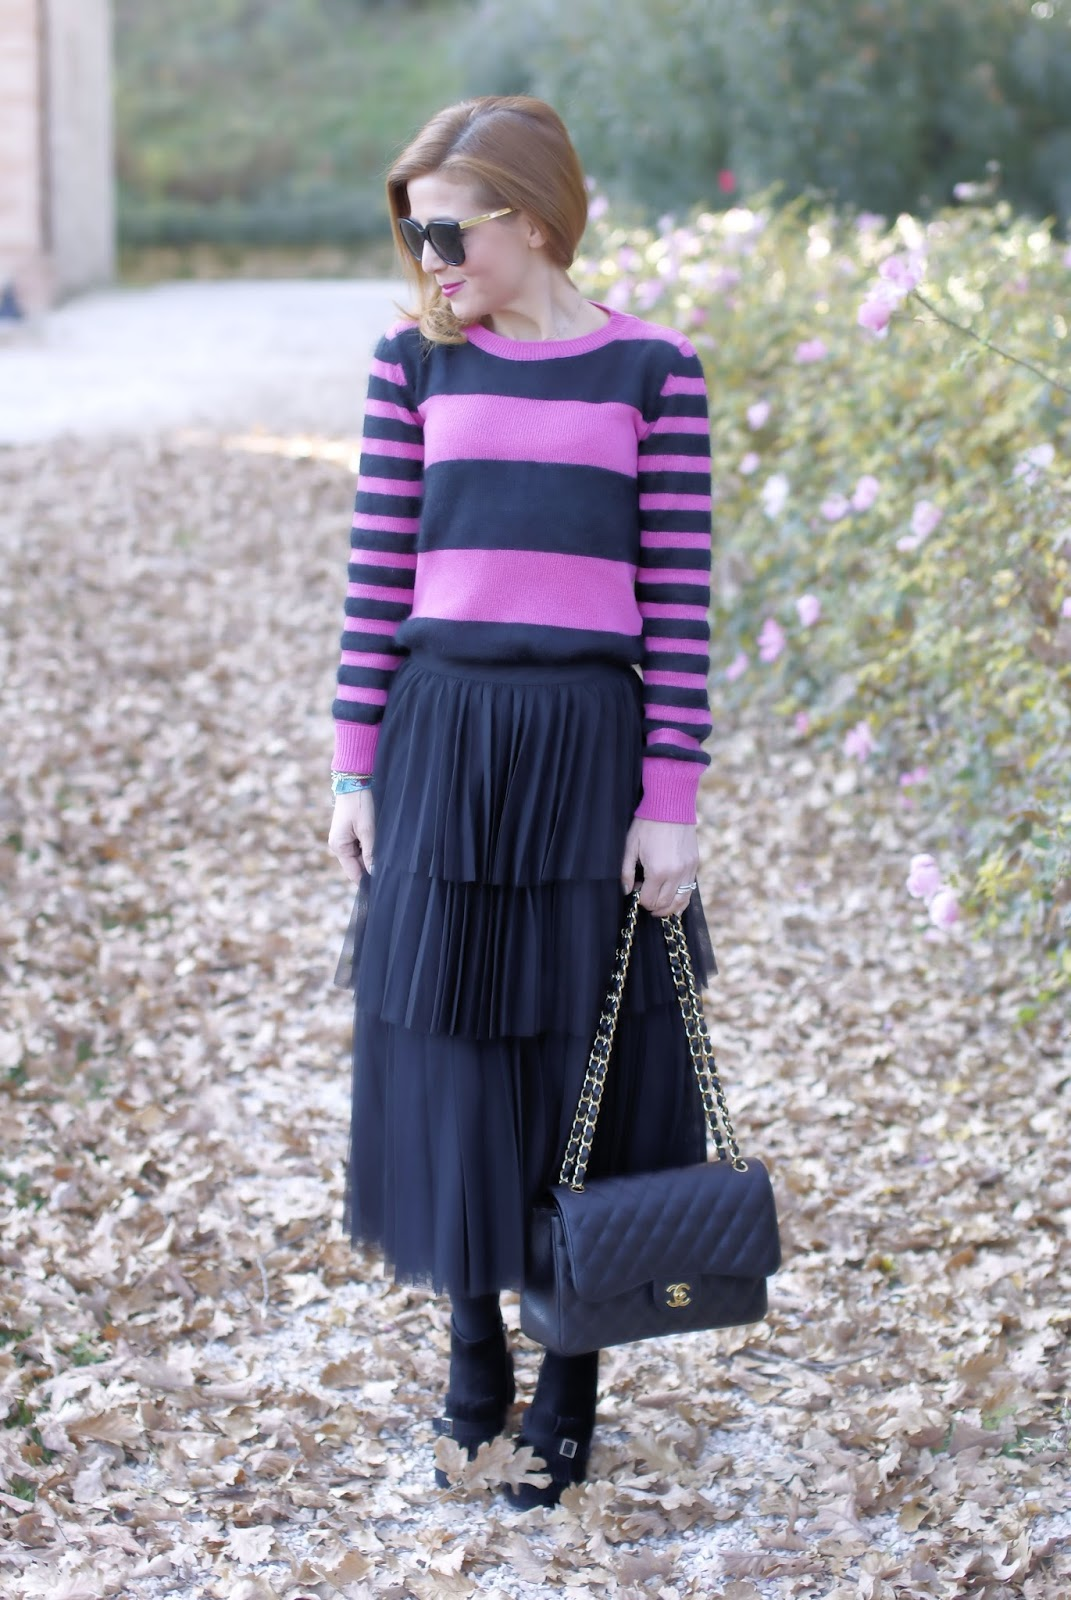 How to wear a black ruffle tulle skirt with Chanel 2.55 bag on Fashion and Cookies fashion blog, fashion blogger style